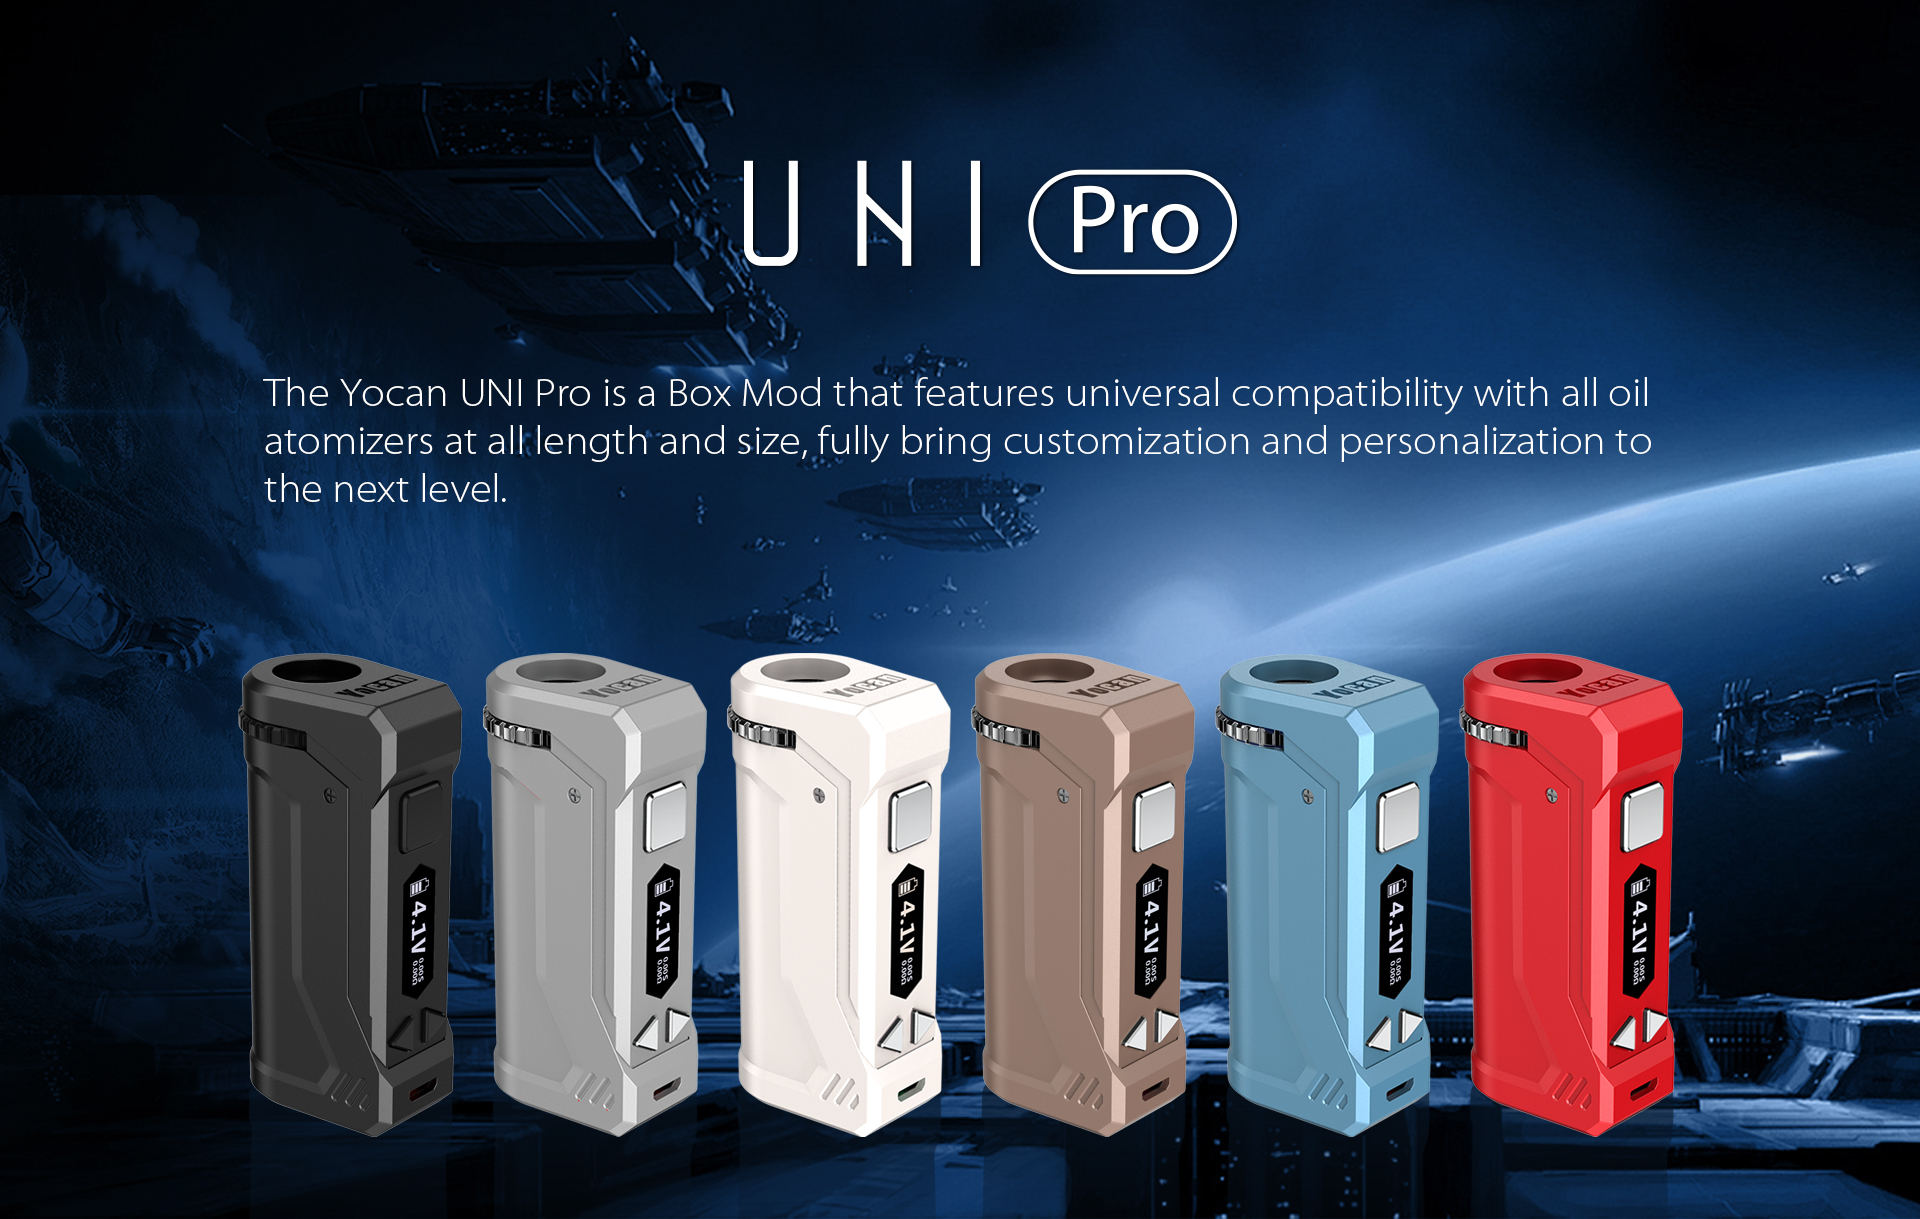 The Yocan UNI Pro is a Box Mod that features universal compatibility with all oil cartridges at all length and size, bring customization and personalization to the next level.